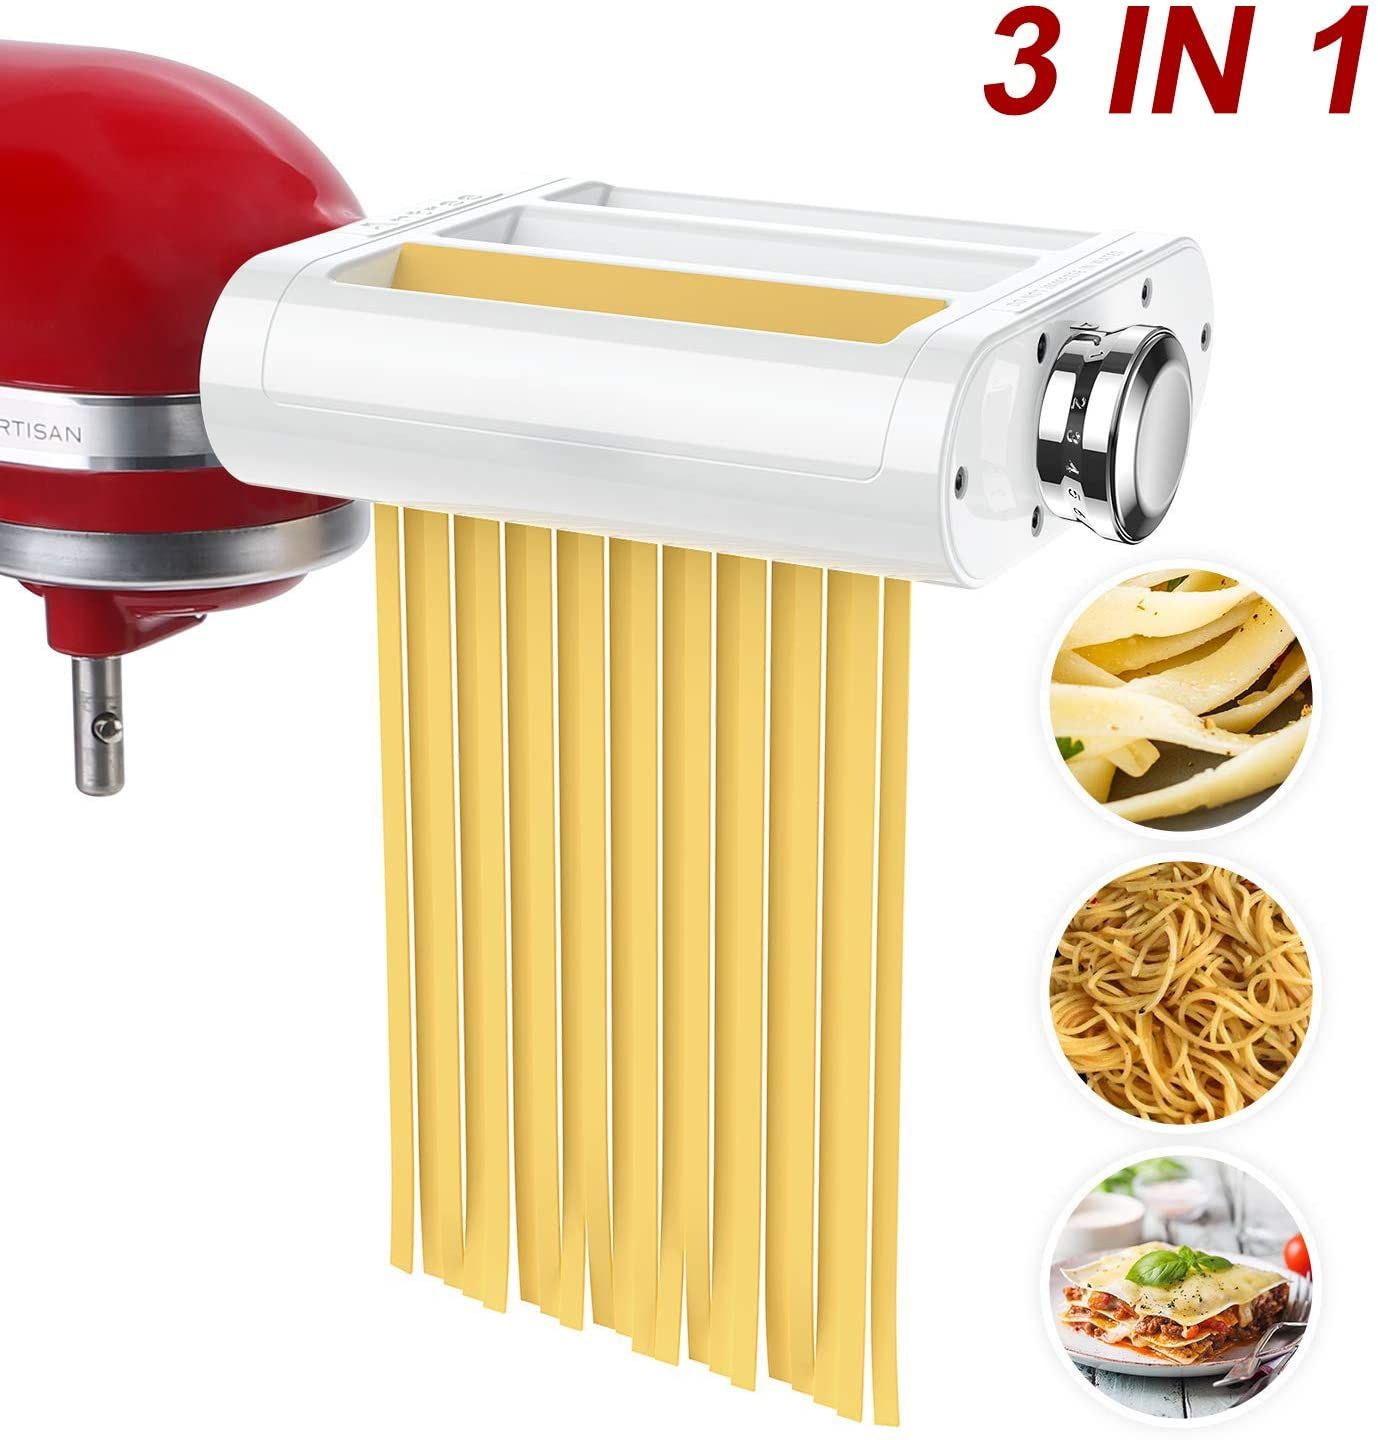 Antree Pasta Maker Attachment 3 In 1 Set For Kitchenaid Stand Mixers Included Pasta Sheet Roller In 2020 Pasta Maker Kitchenaid Stand Mixer Pasta Roller